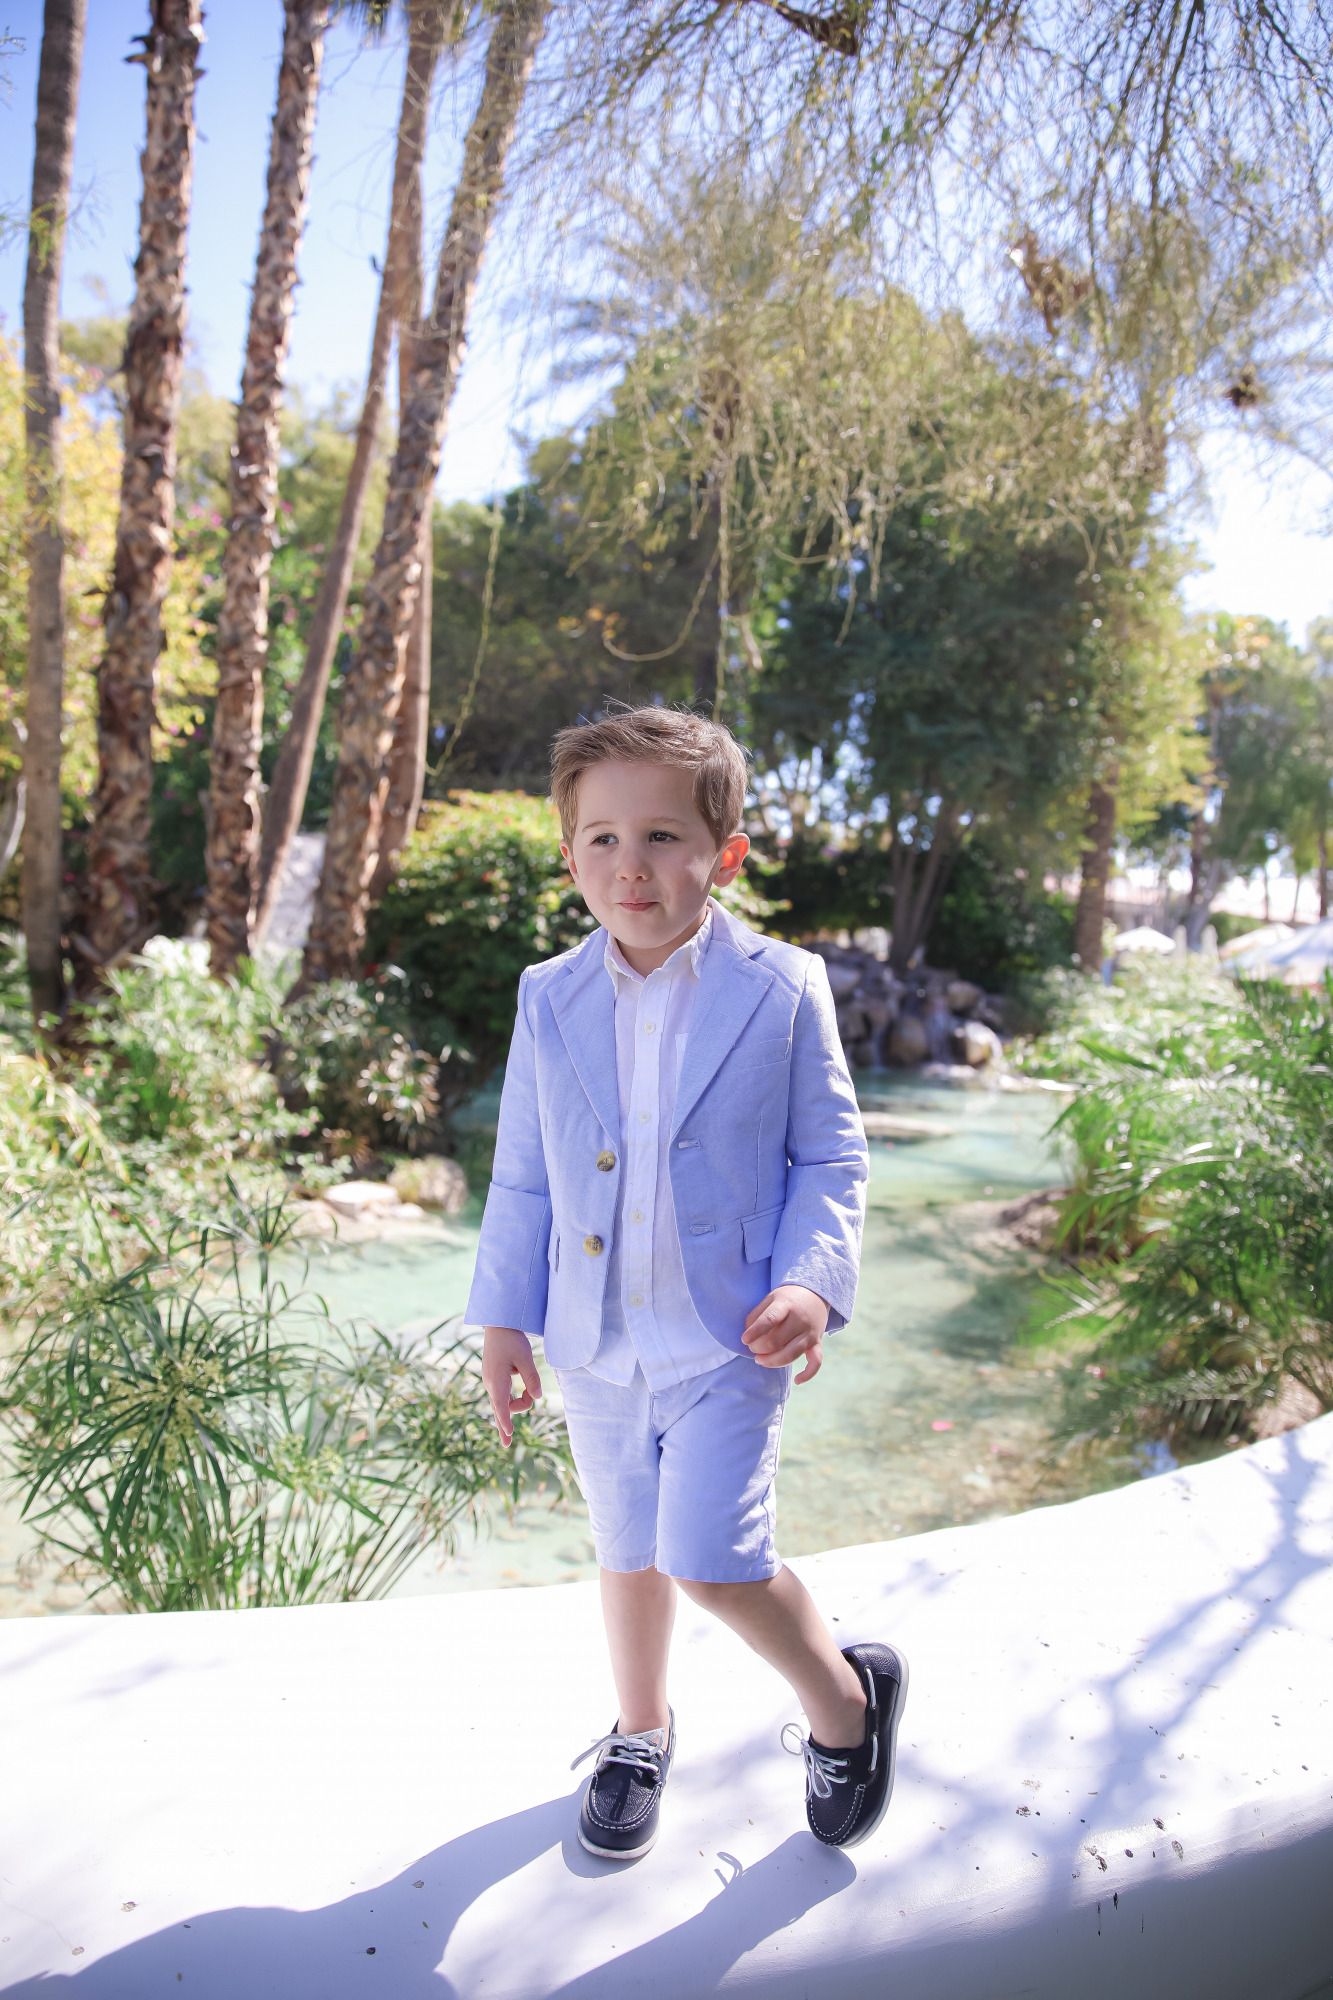 janie and jack easter kids outfits 2021, kids easter outfit ideas toddler, emily gemma, scottsdale fashion blog4 |Spring Outfit Ideas for Kids by popular US fashion blog, The Sweetest Thing: image of a young boy standing outside next to a landscaped pond and wearing a Seersucker Blazer, Seersucker Shorts, White Button-down, and Leather Boat Shoes.